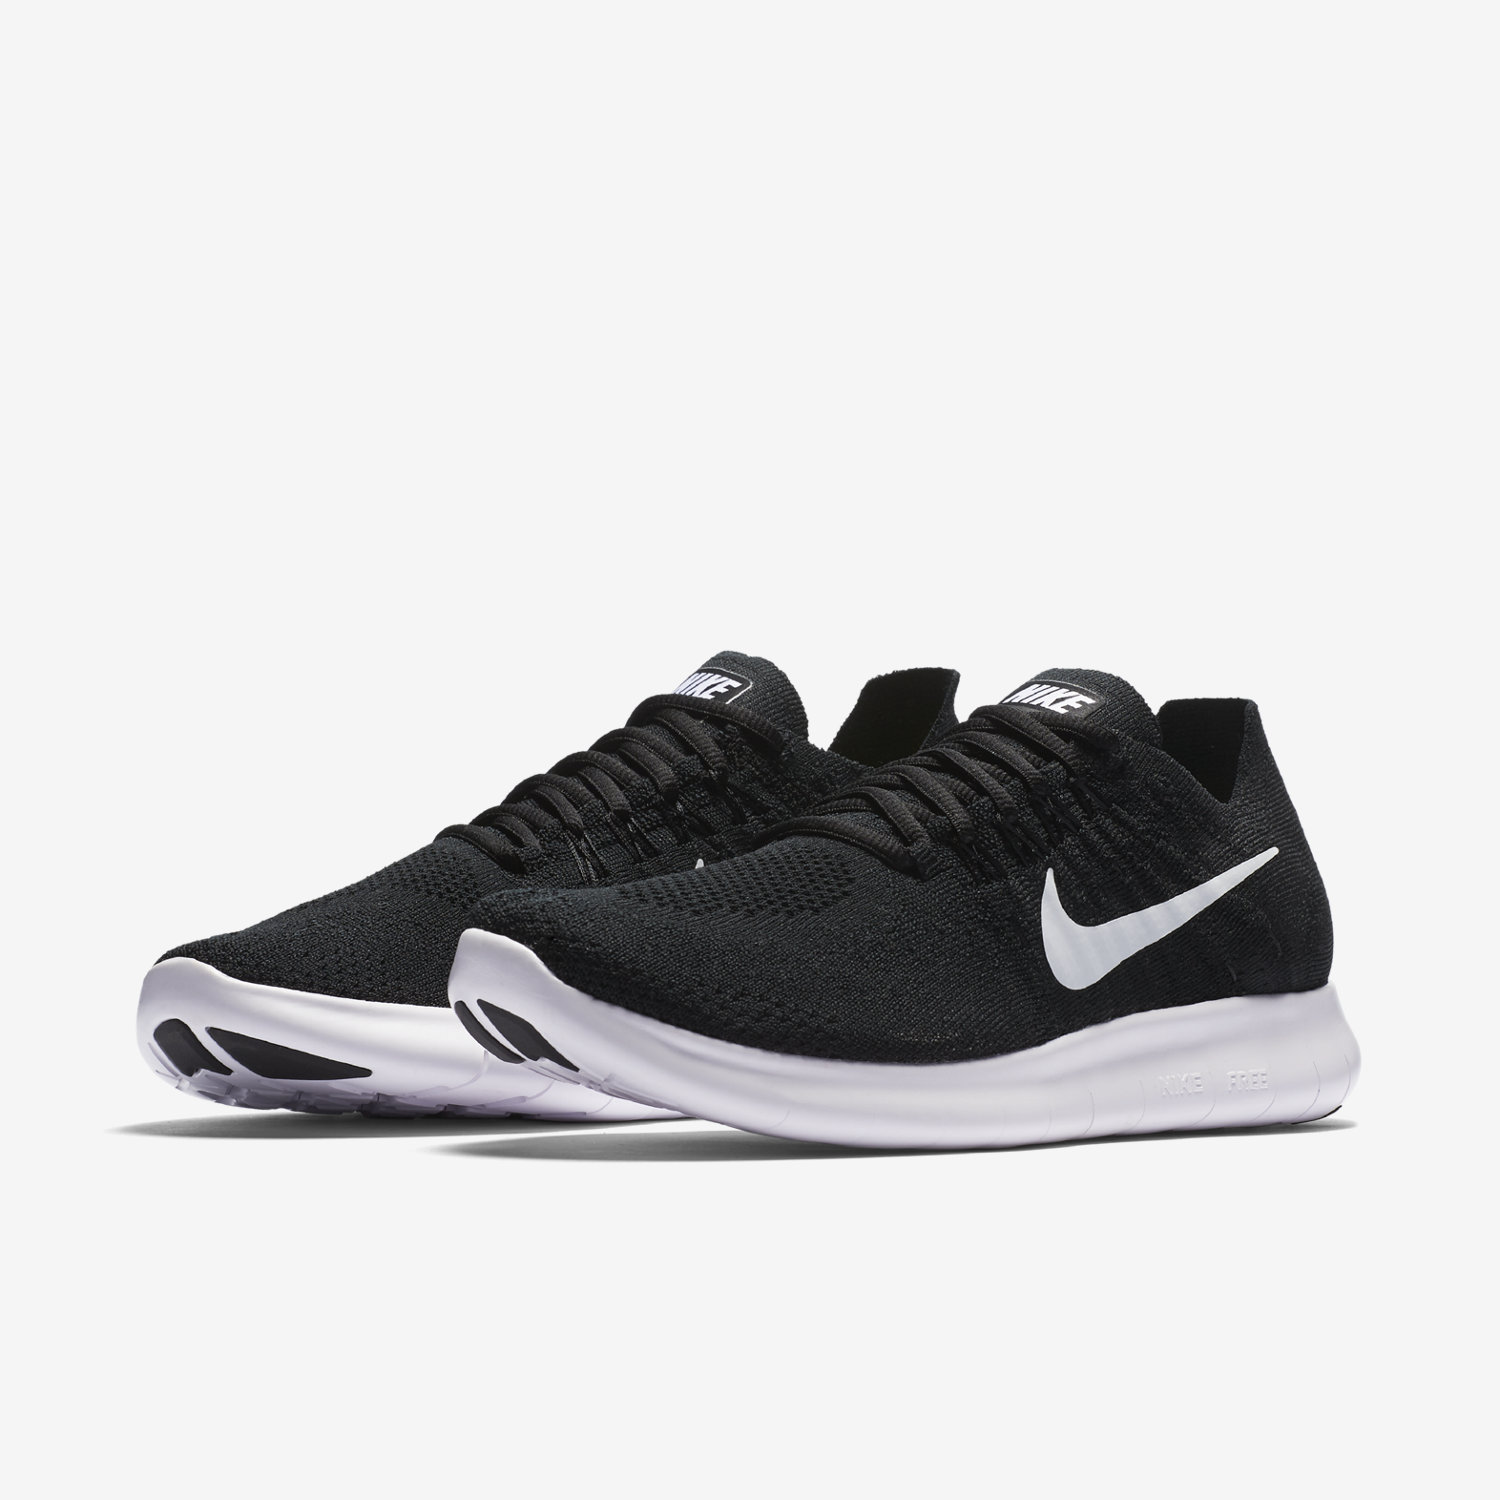 nike running shoes black 2017. nike running shoes black 2017